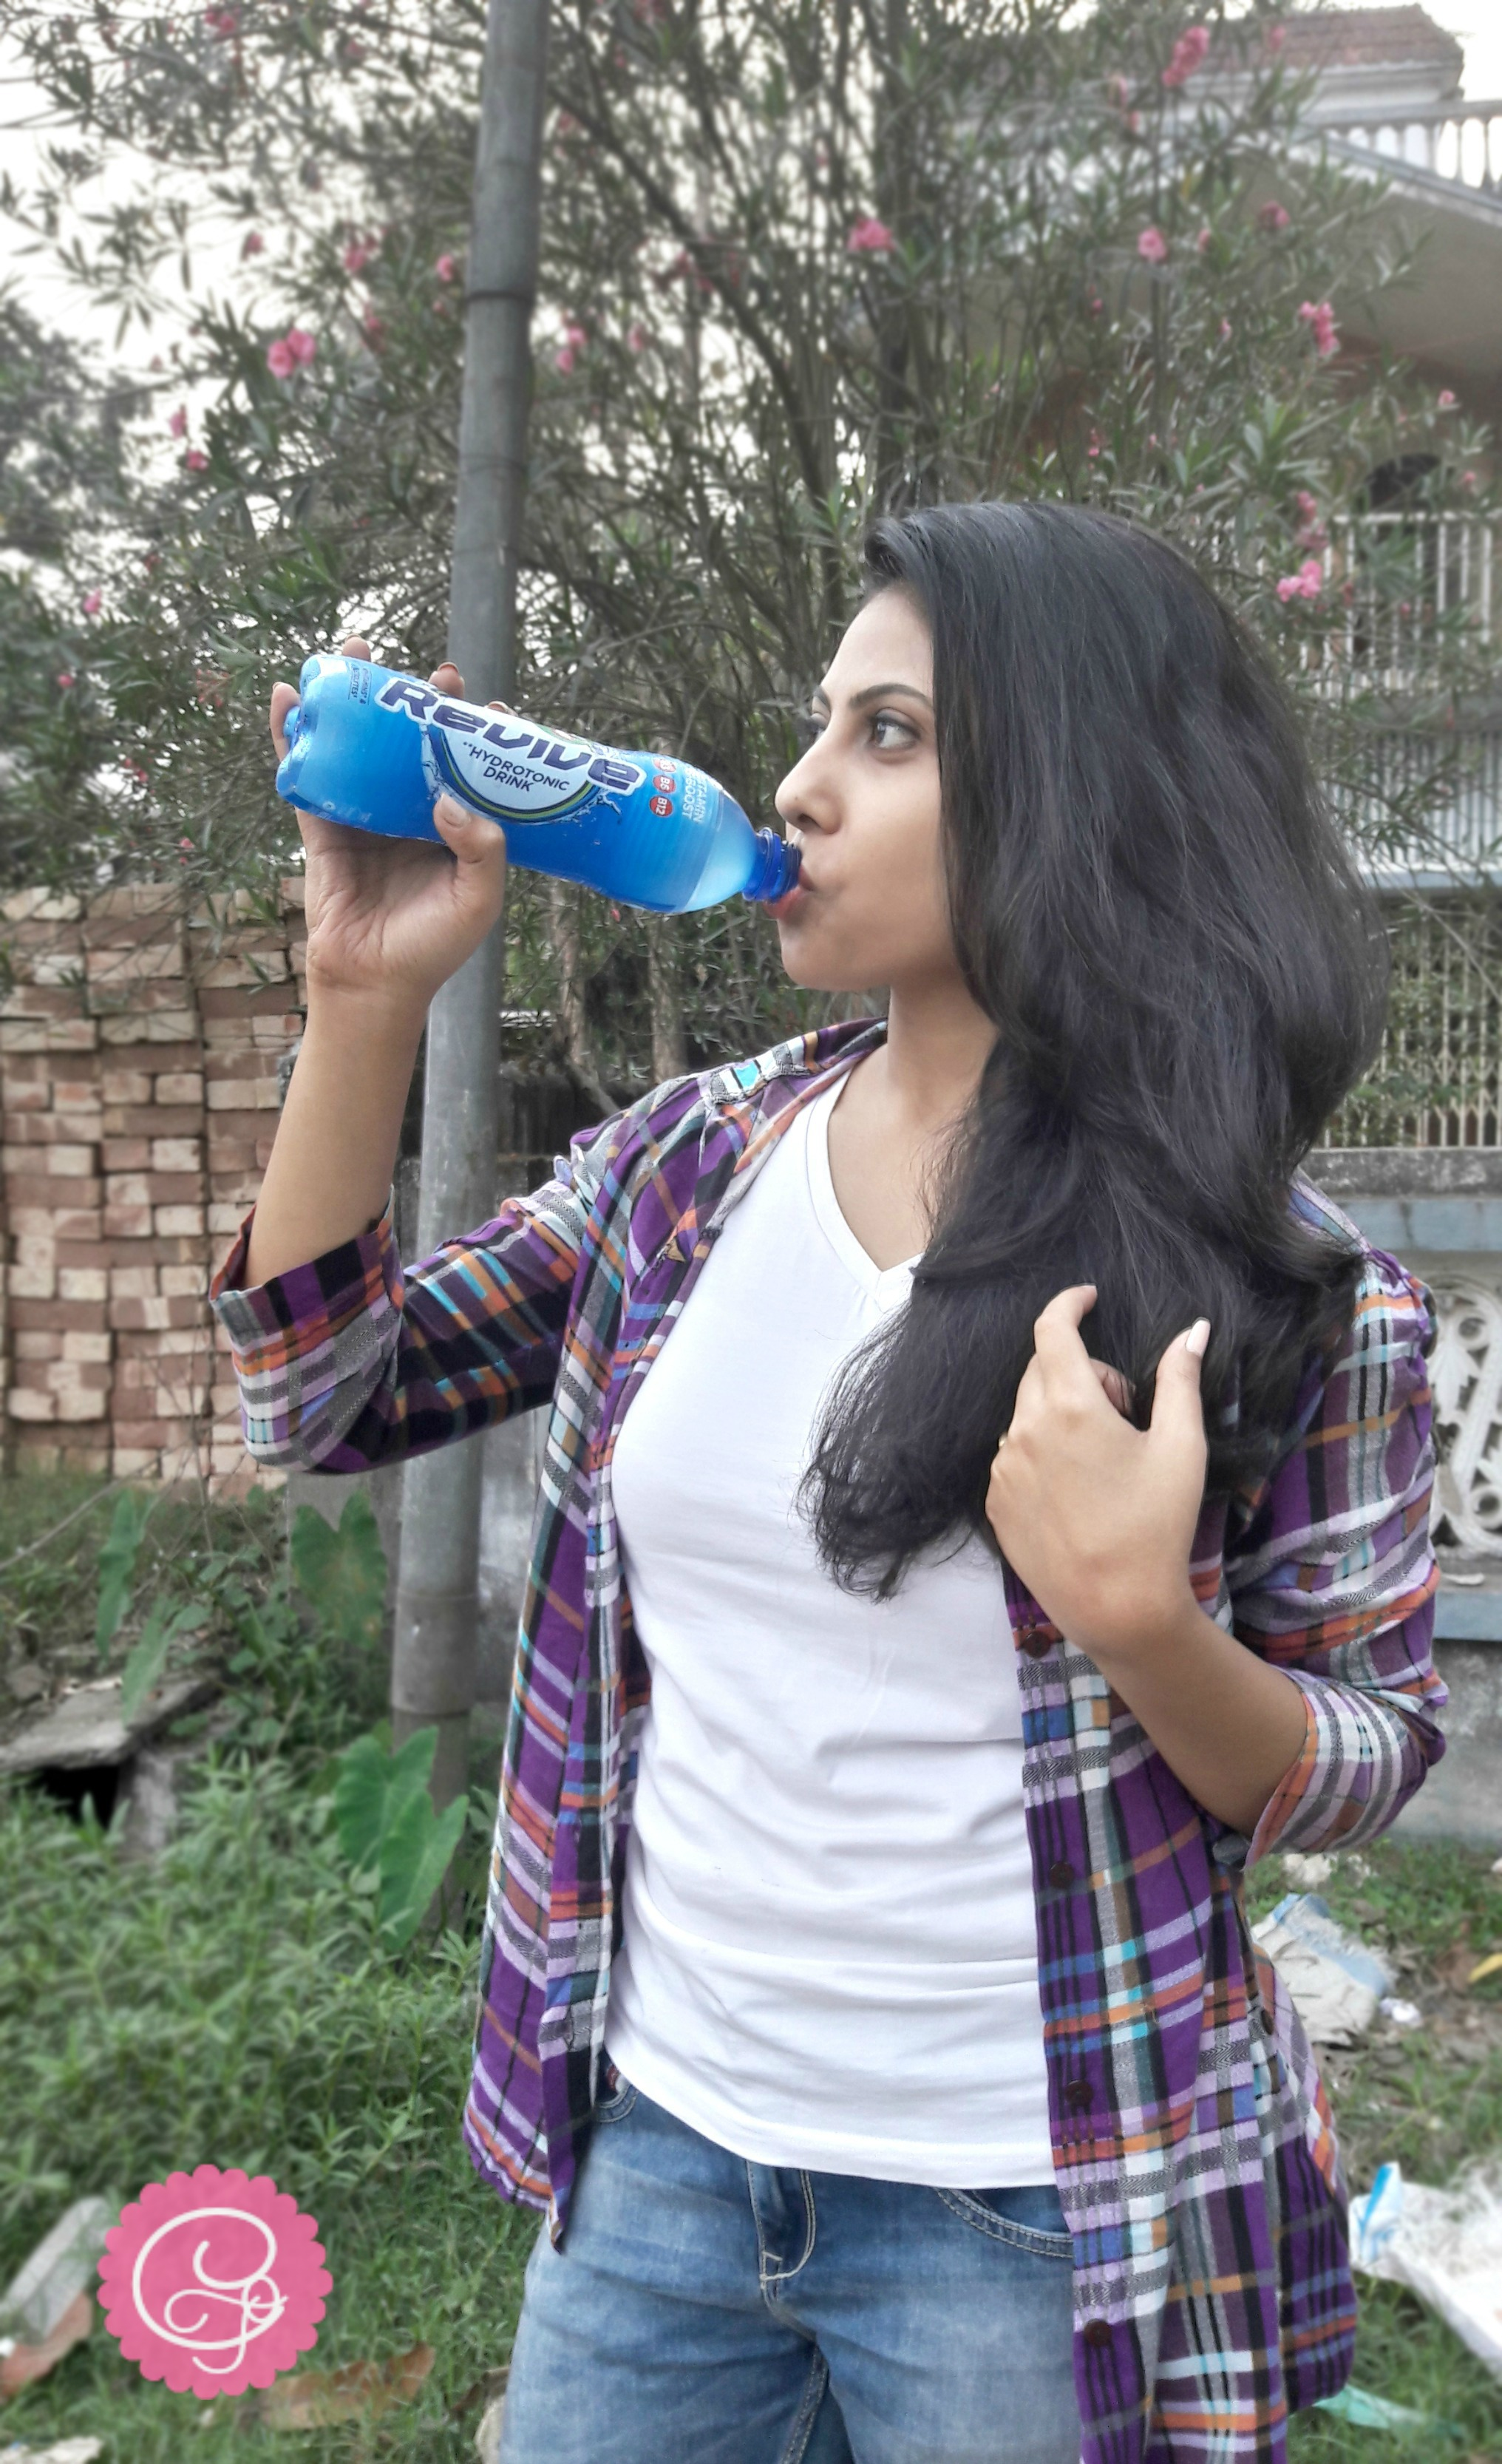 7UP Revive Saved Me | A Day in My Life | Cherry On Top